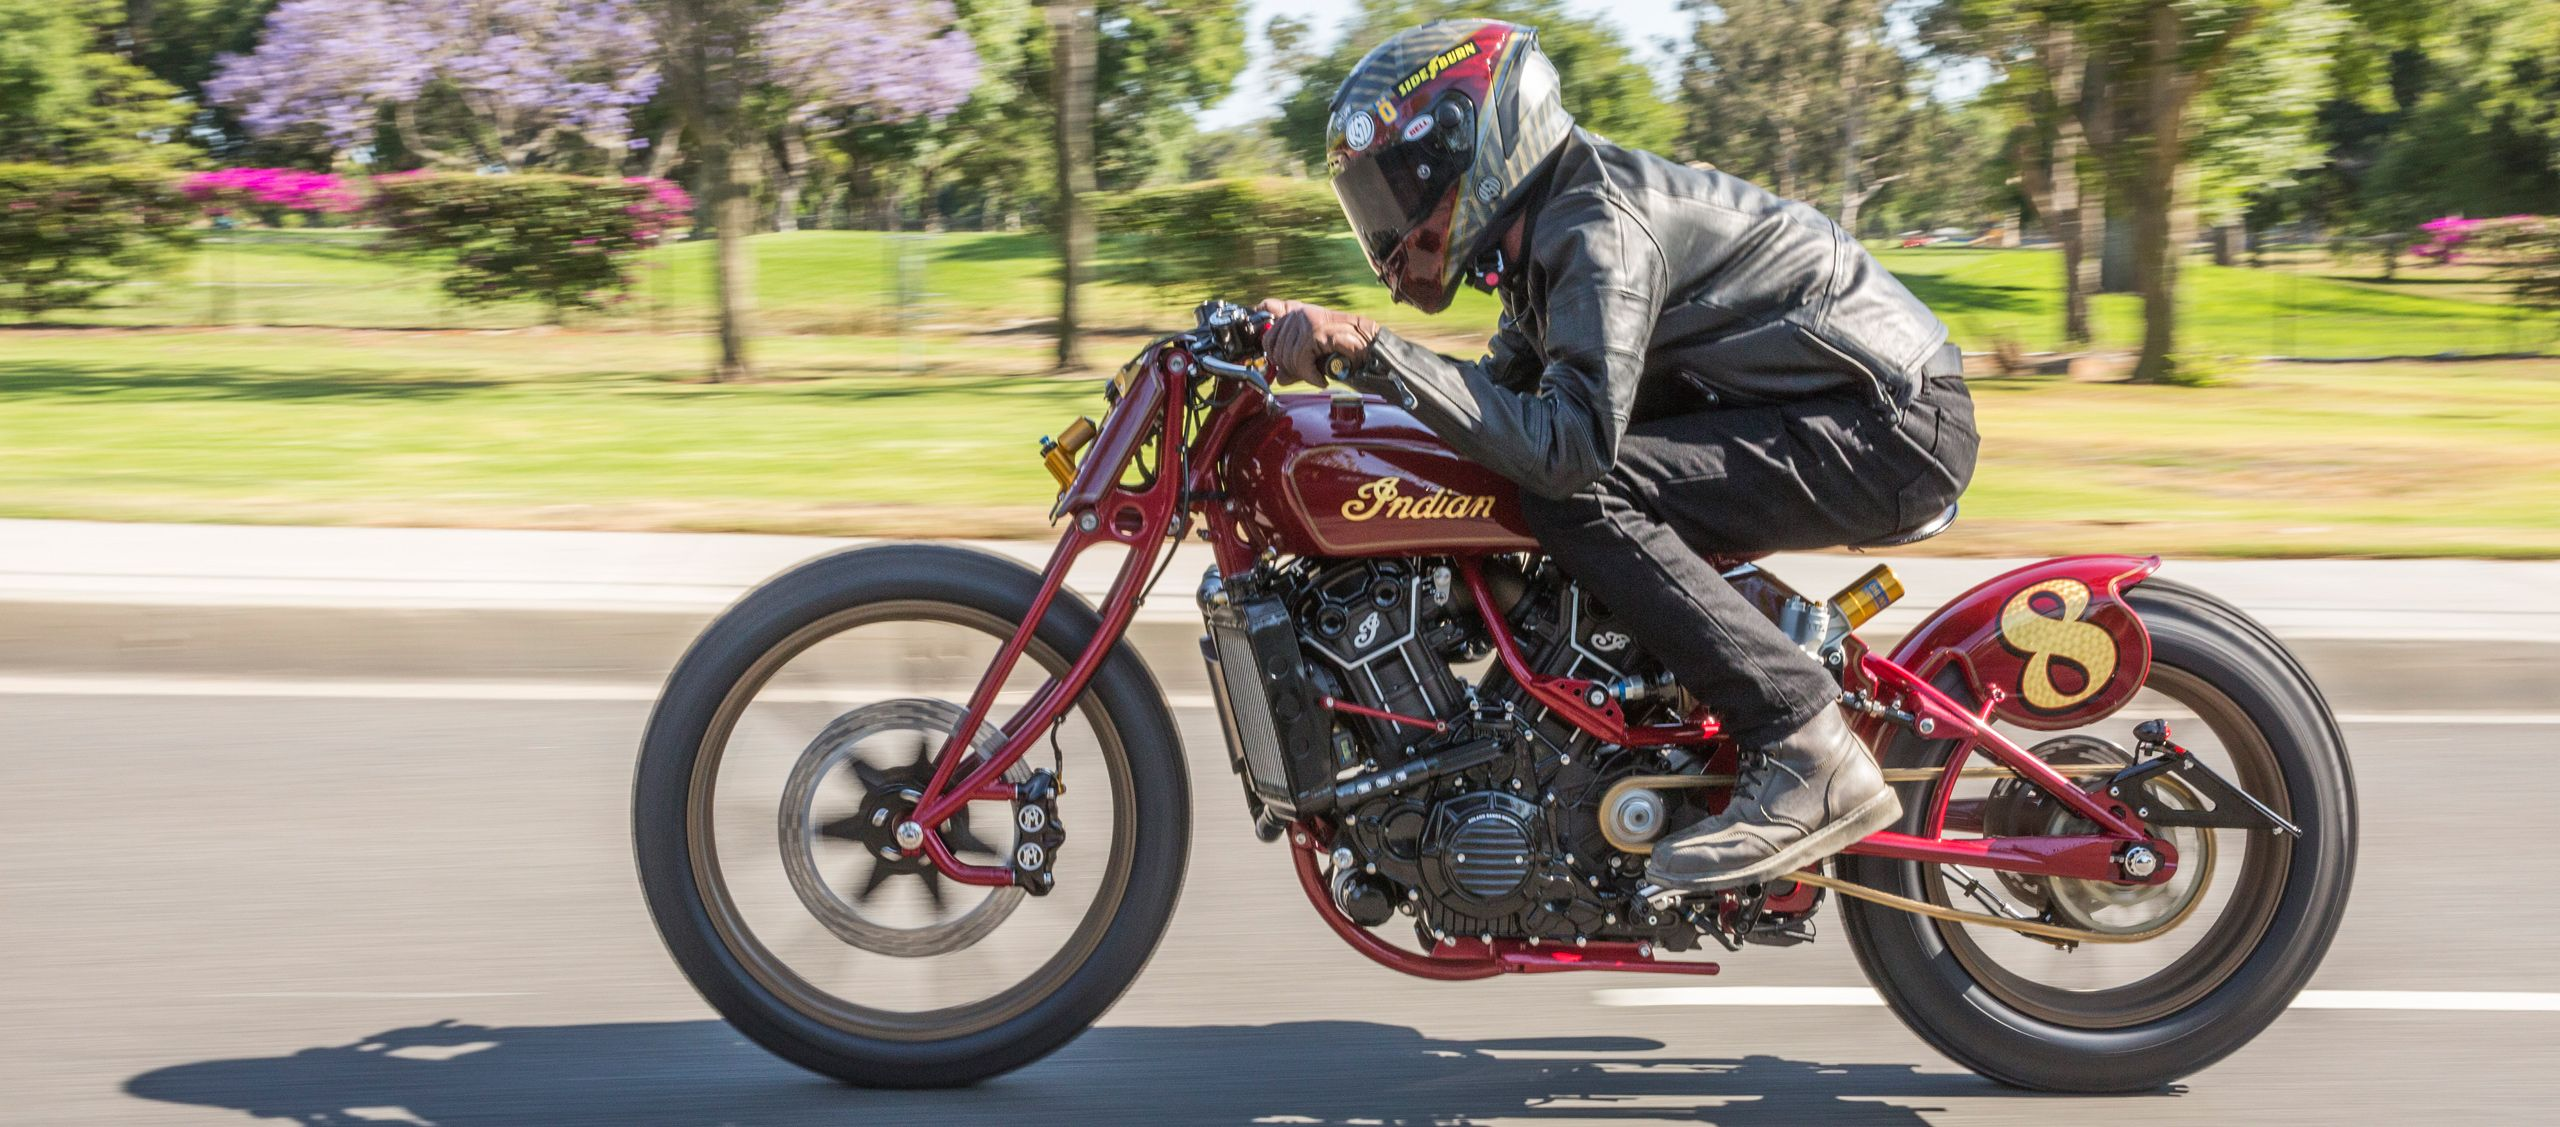 Bikes motorcycle parts and riding gear roland sands design - Rsd Scout Gear Roland Sands Design